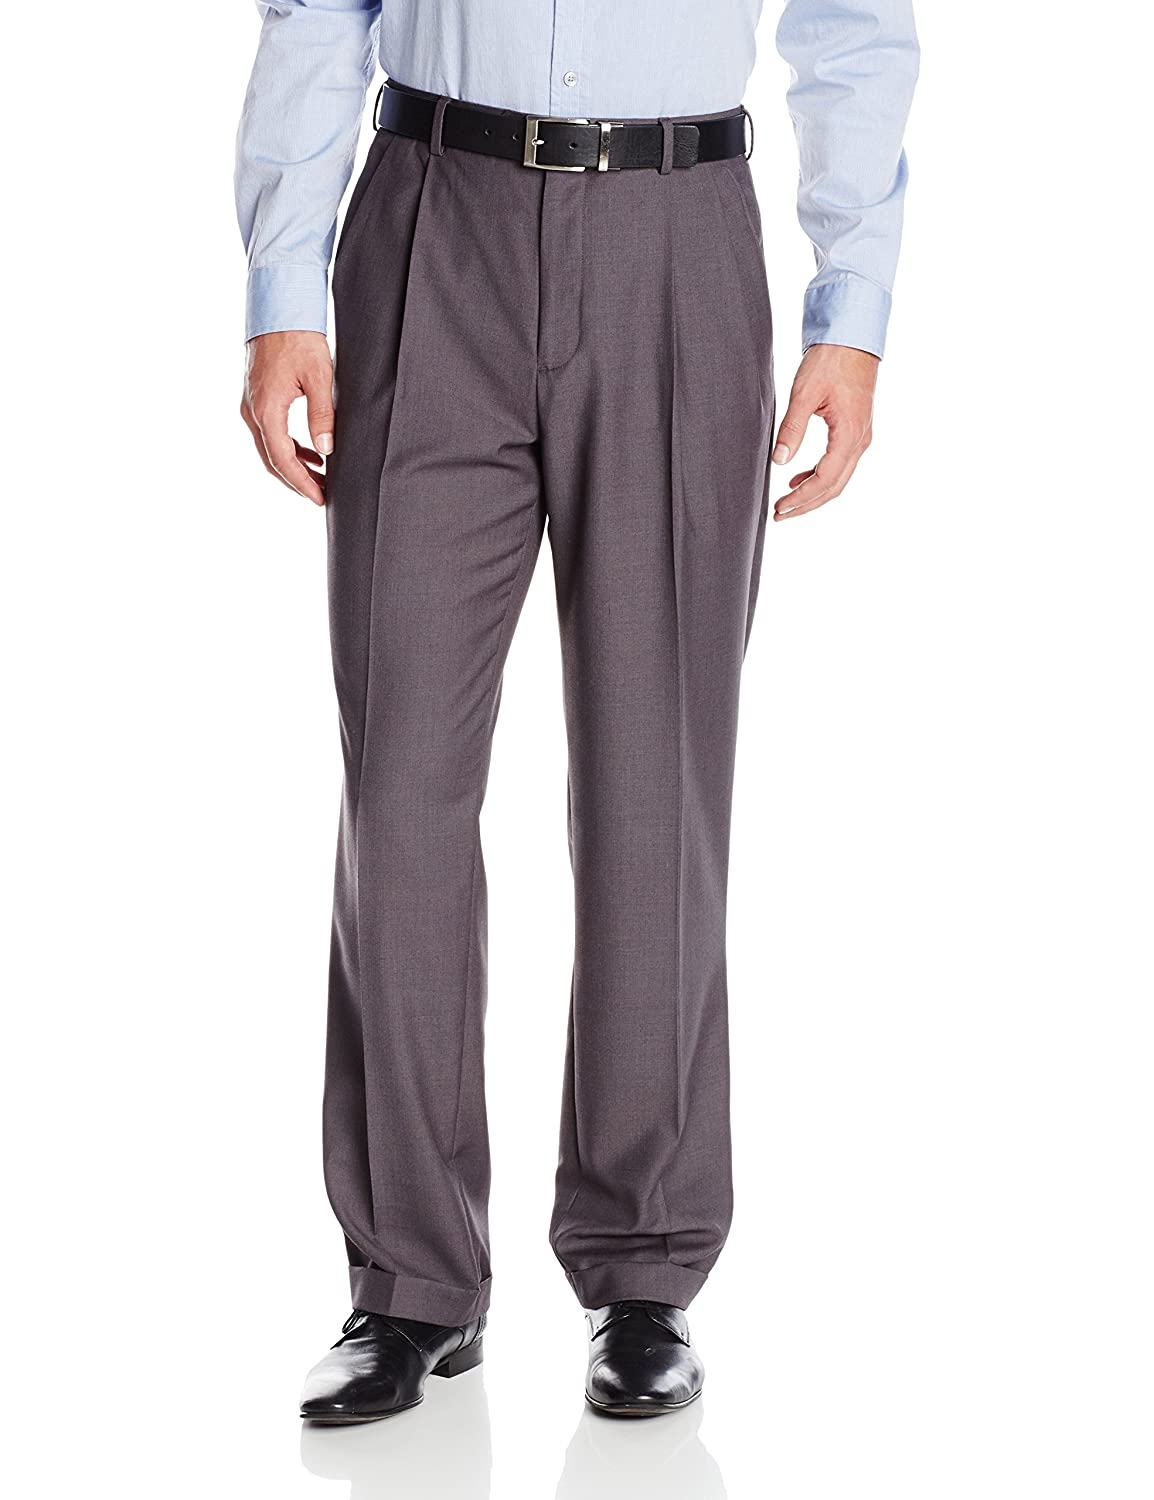 Louis Raphael Mens Straight Fit Pleated Suit Seperate Pant Louis Raphael Men/'s Tailored A663 1088